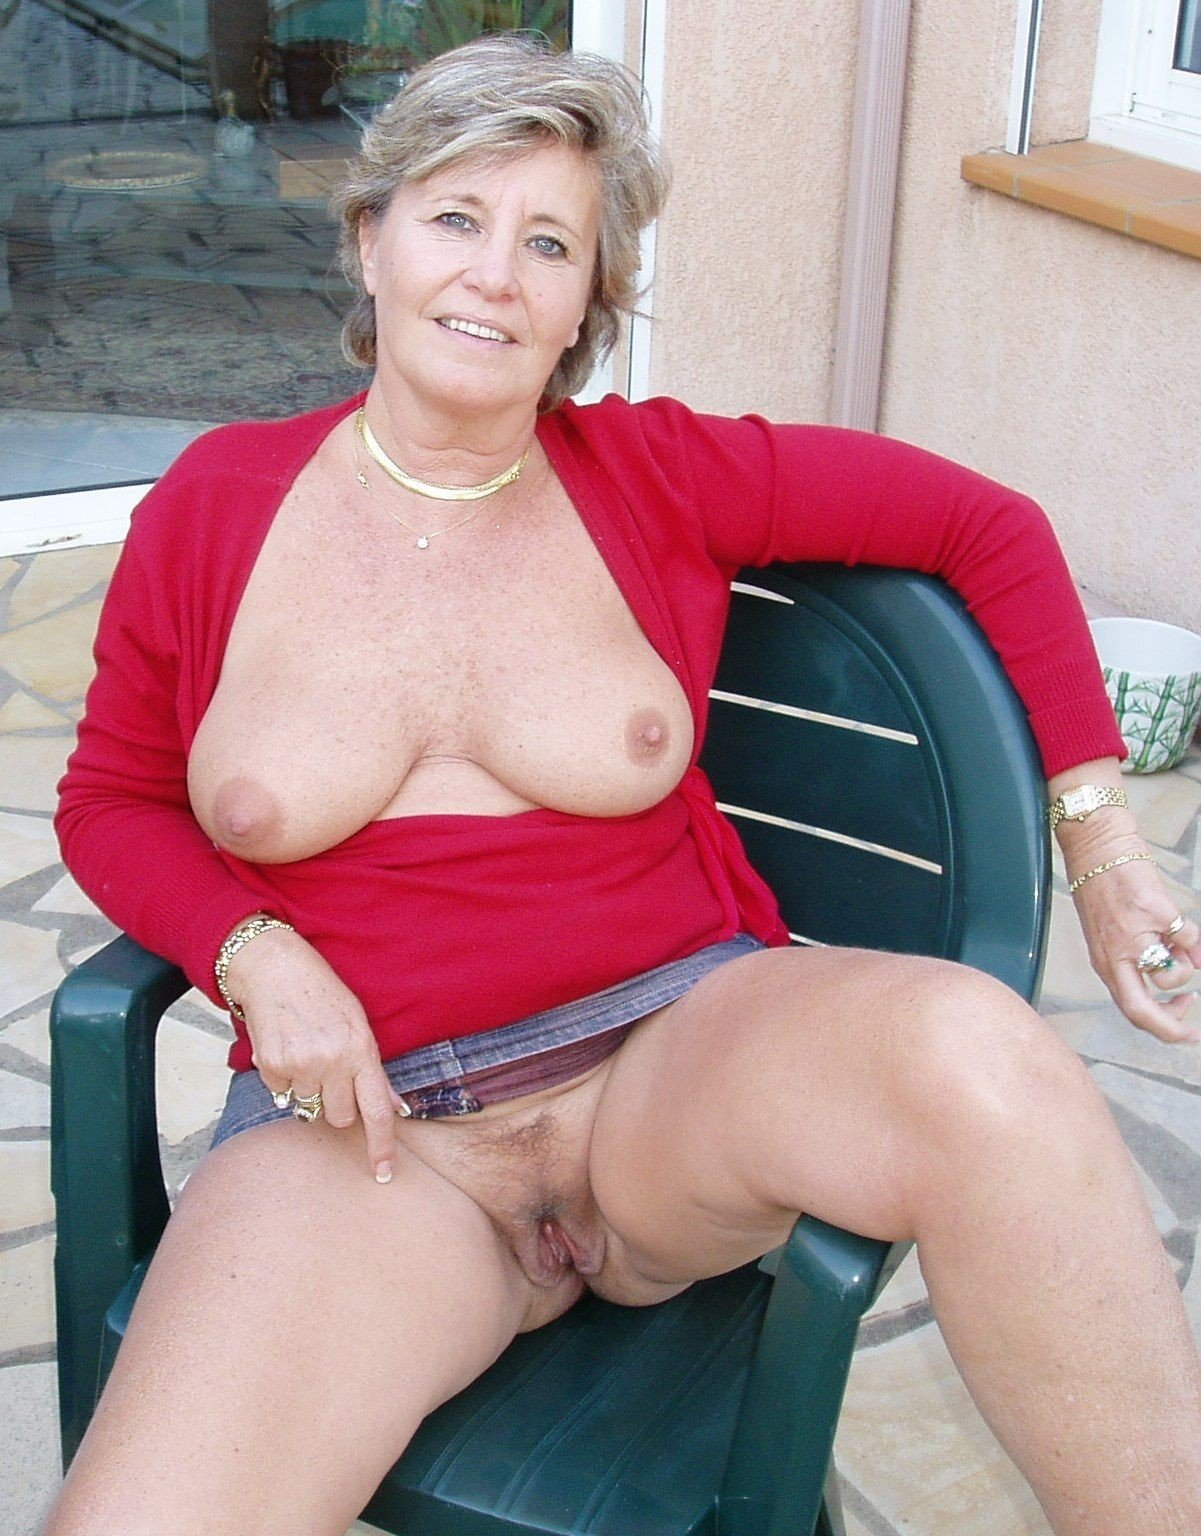 Older amateur women xxx thumbnail galleries 9